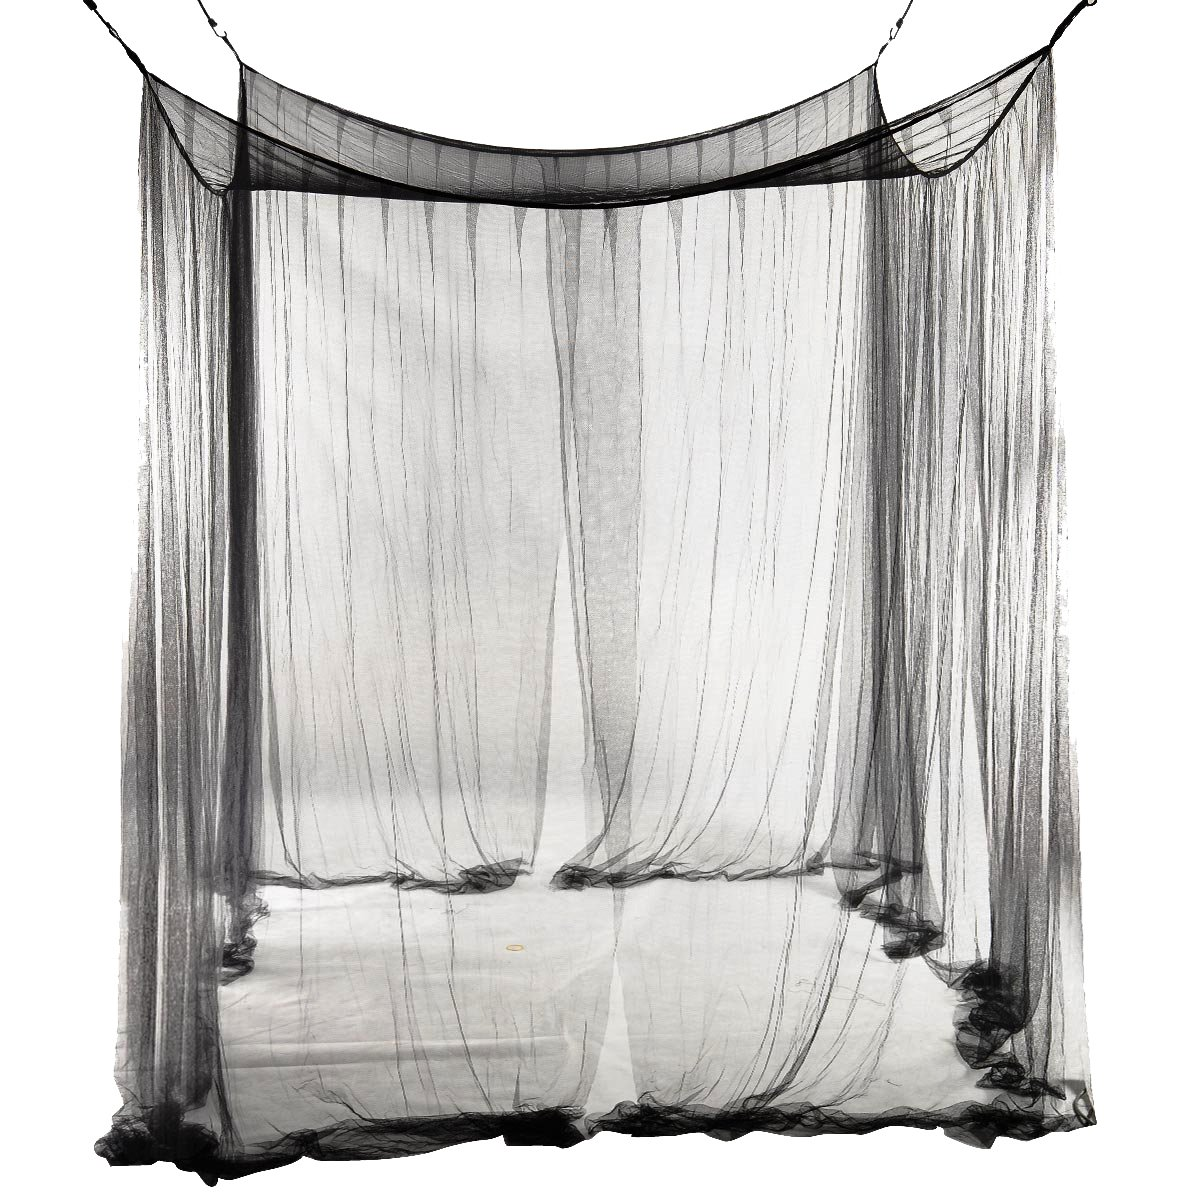 SODIAL(R) 4-Corner Bed Netting Canopy Mosquito Net for Queen/King Sized Bed 190 * 210 * 240cm (Black) STK0115011115